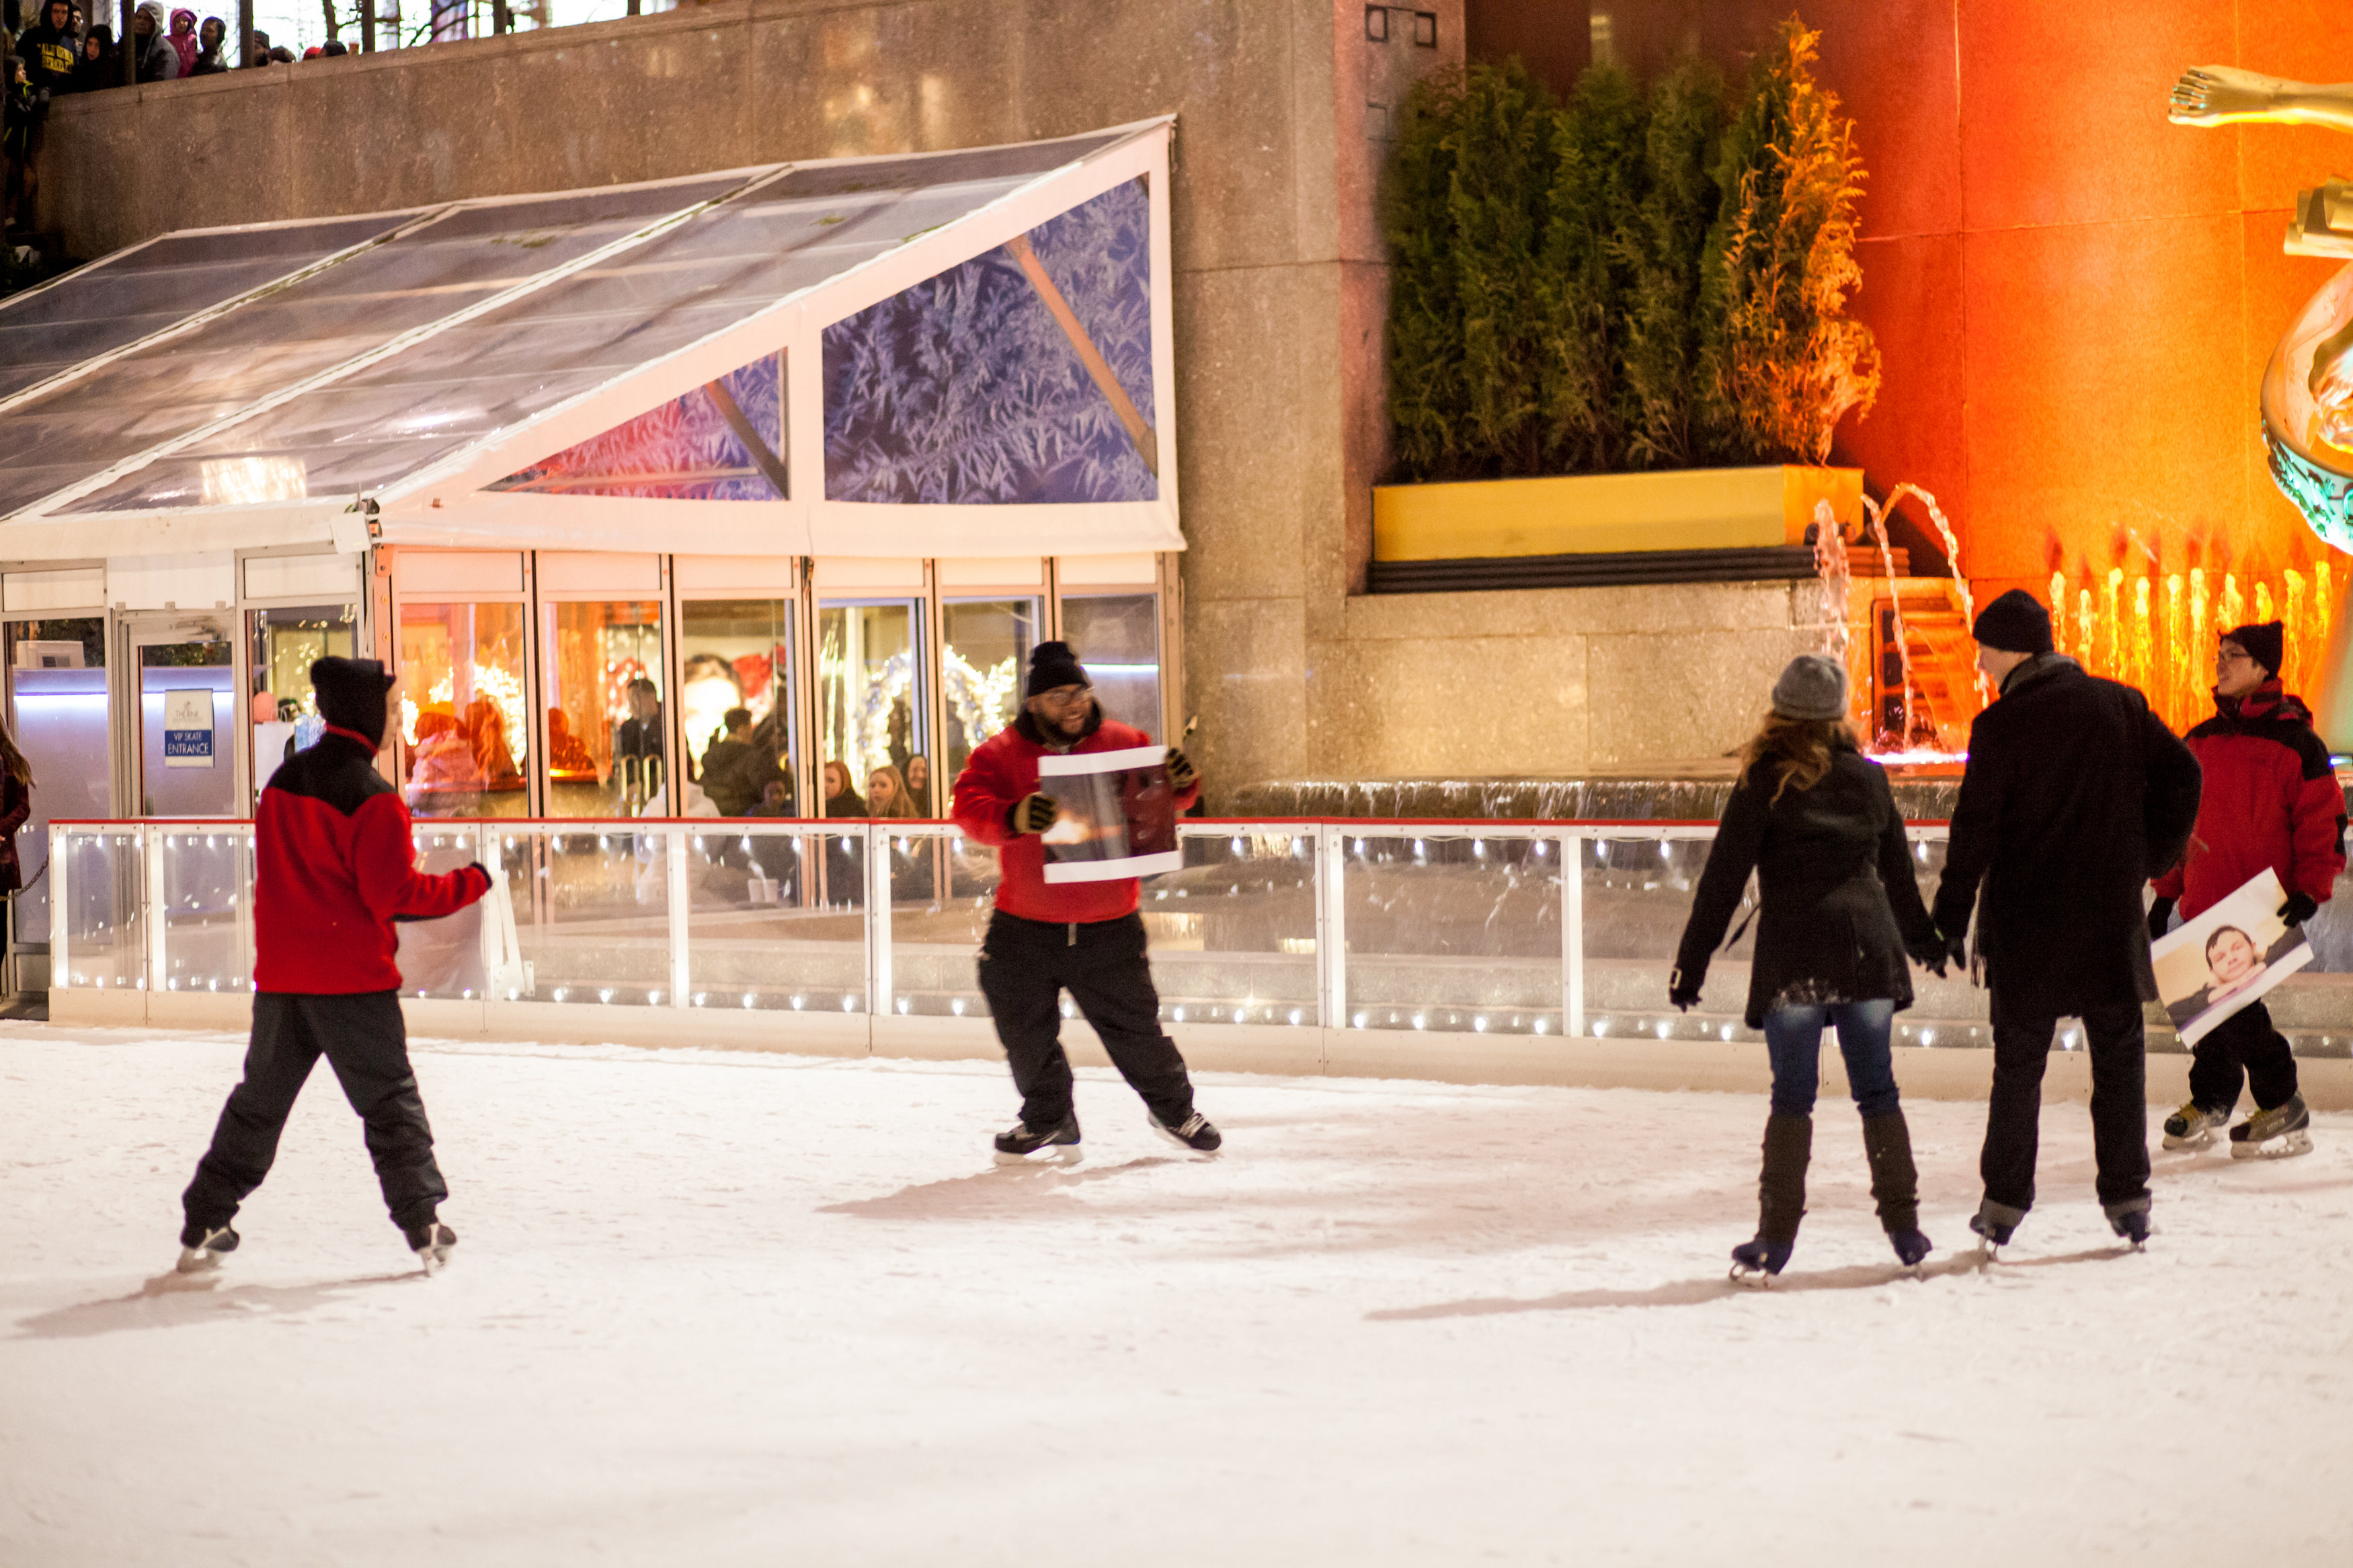 Image 3 of Christmas Day Proposal at Rockefeller Plaza